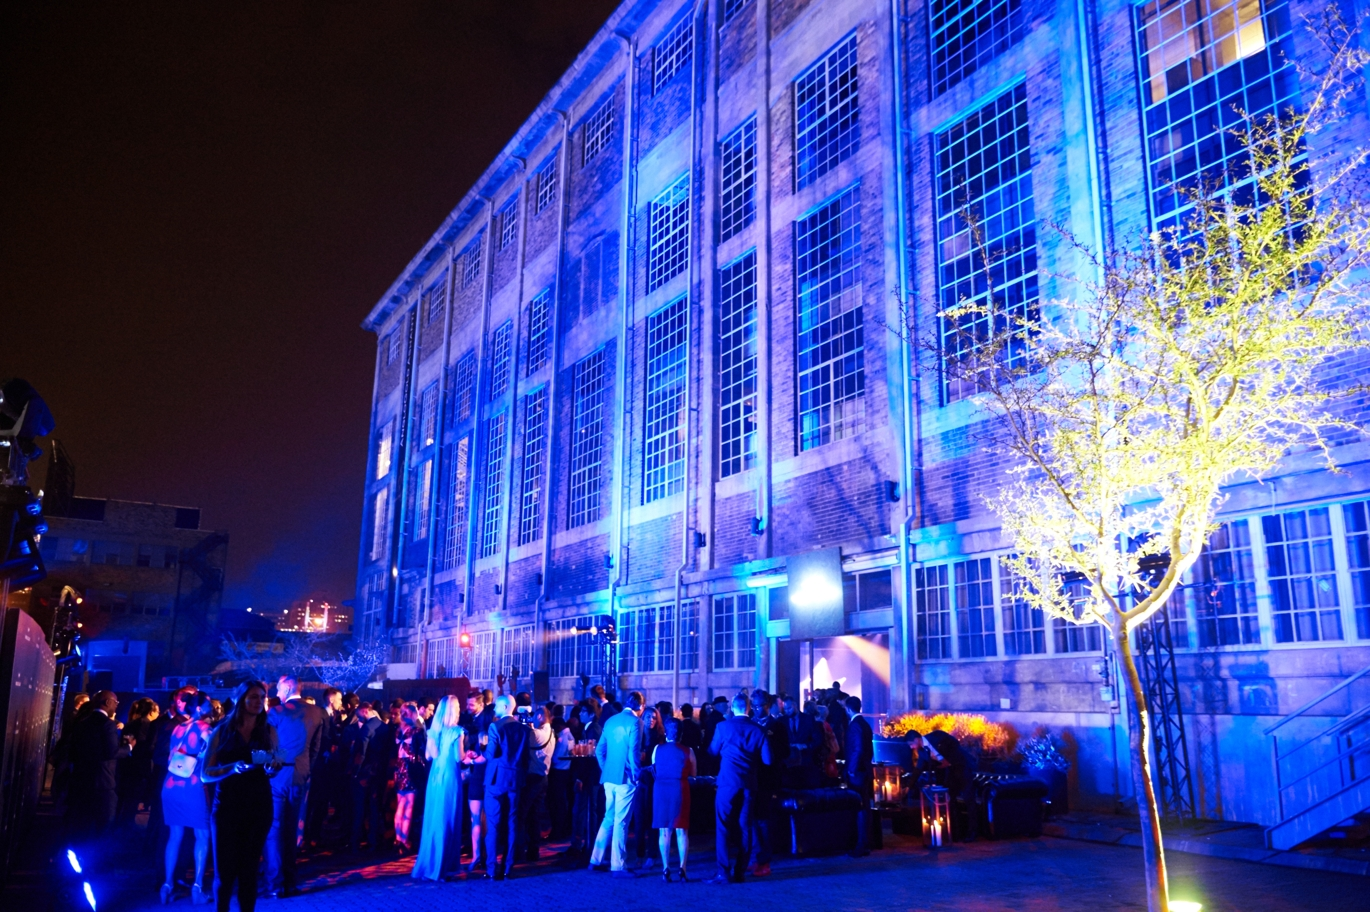 Opening ceremony in Johannesburg on Sunday courtesy of Johnnie Walker's Symphony in Blue